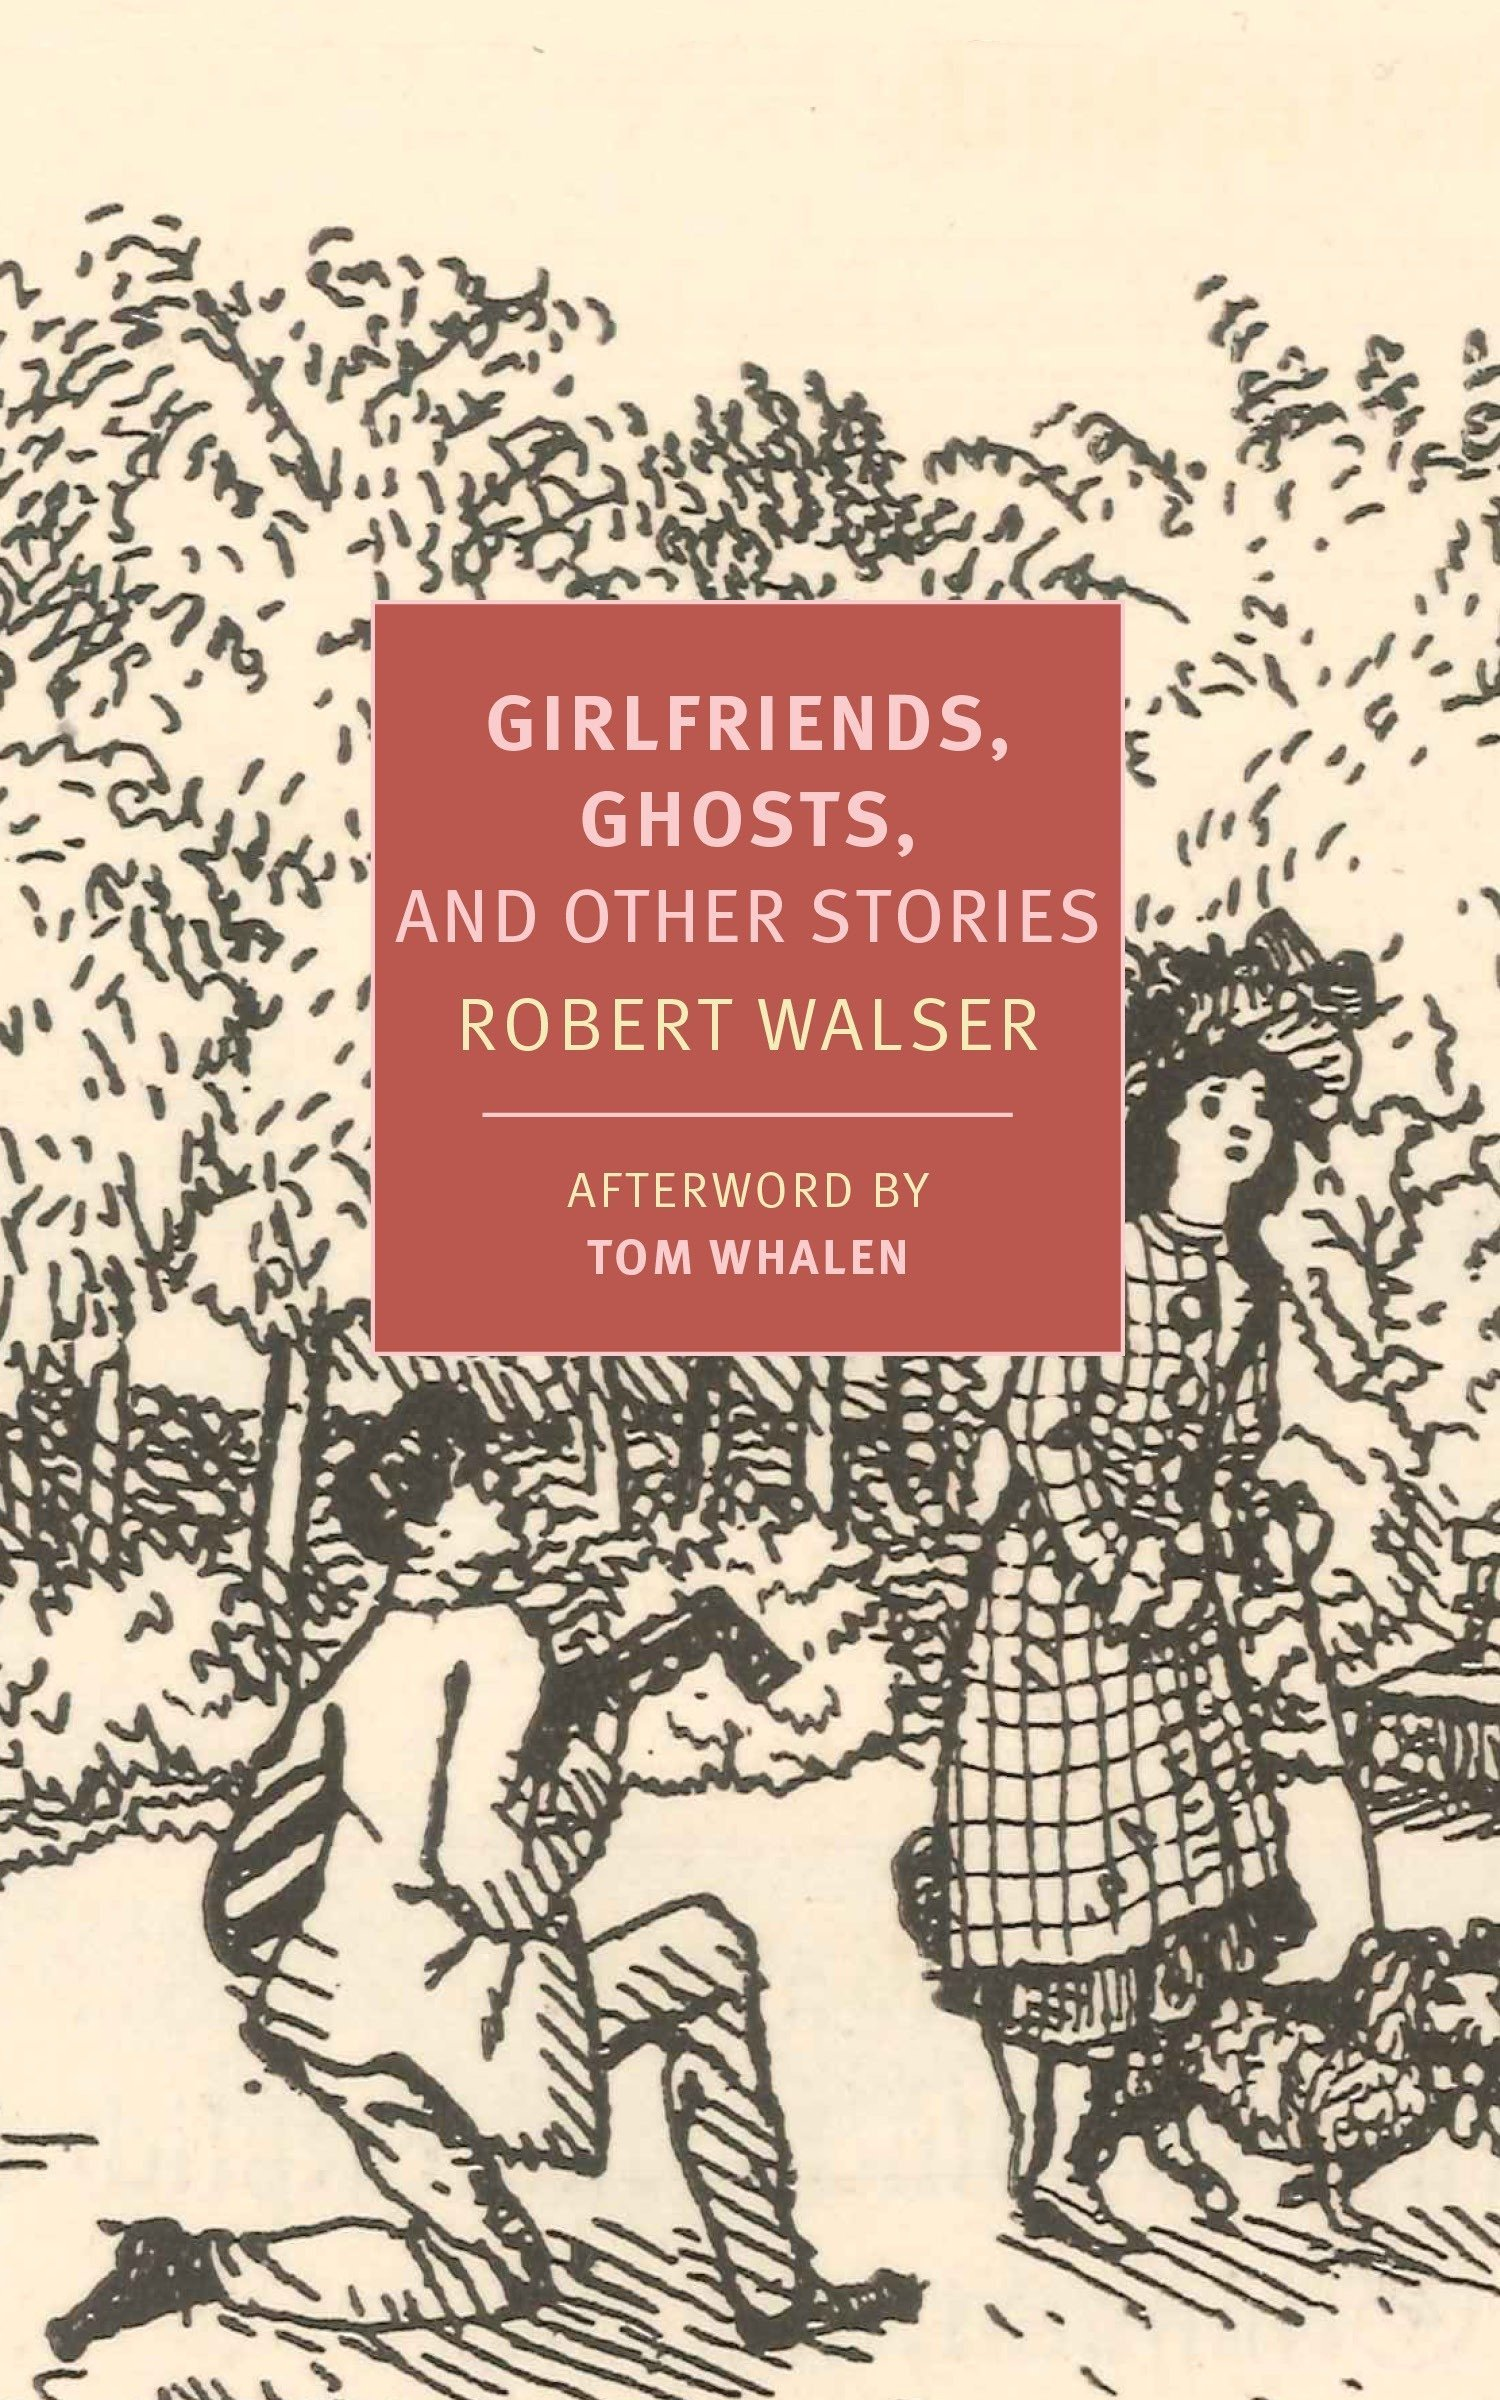 Amazon.com: Girlfriends, Ghosts, and Other Stories (New York Review ...